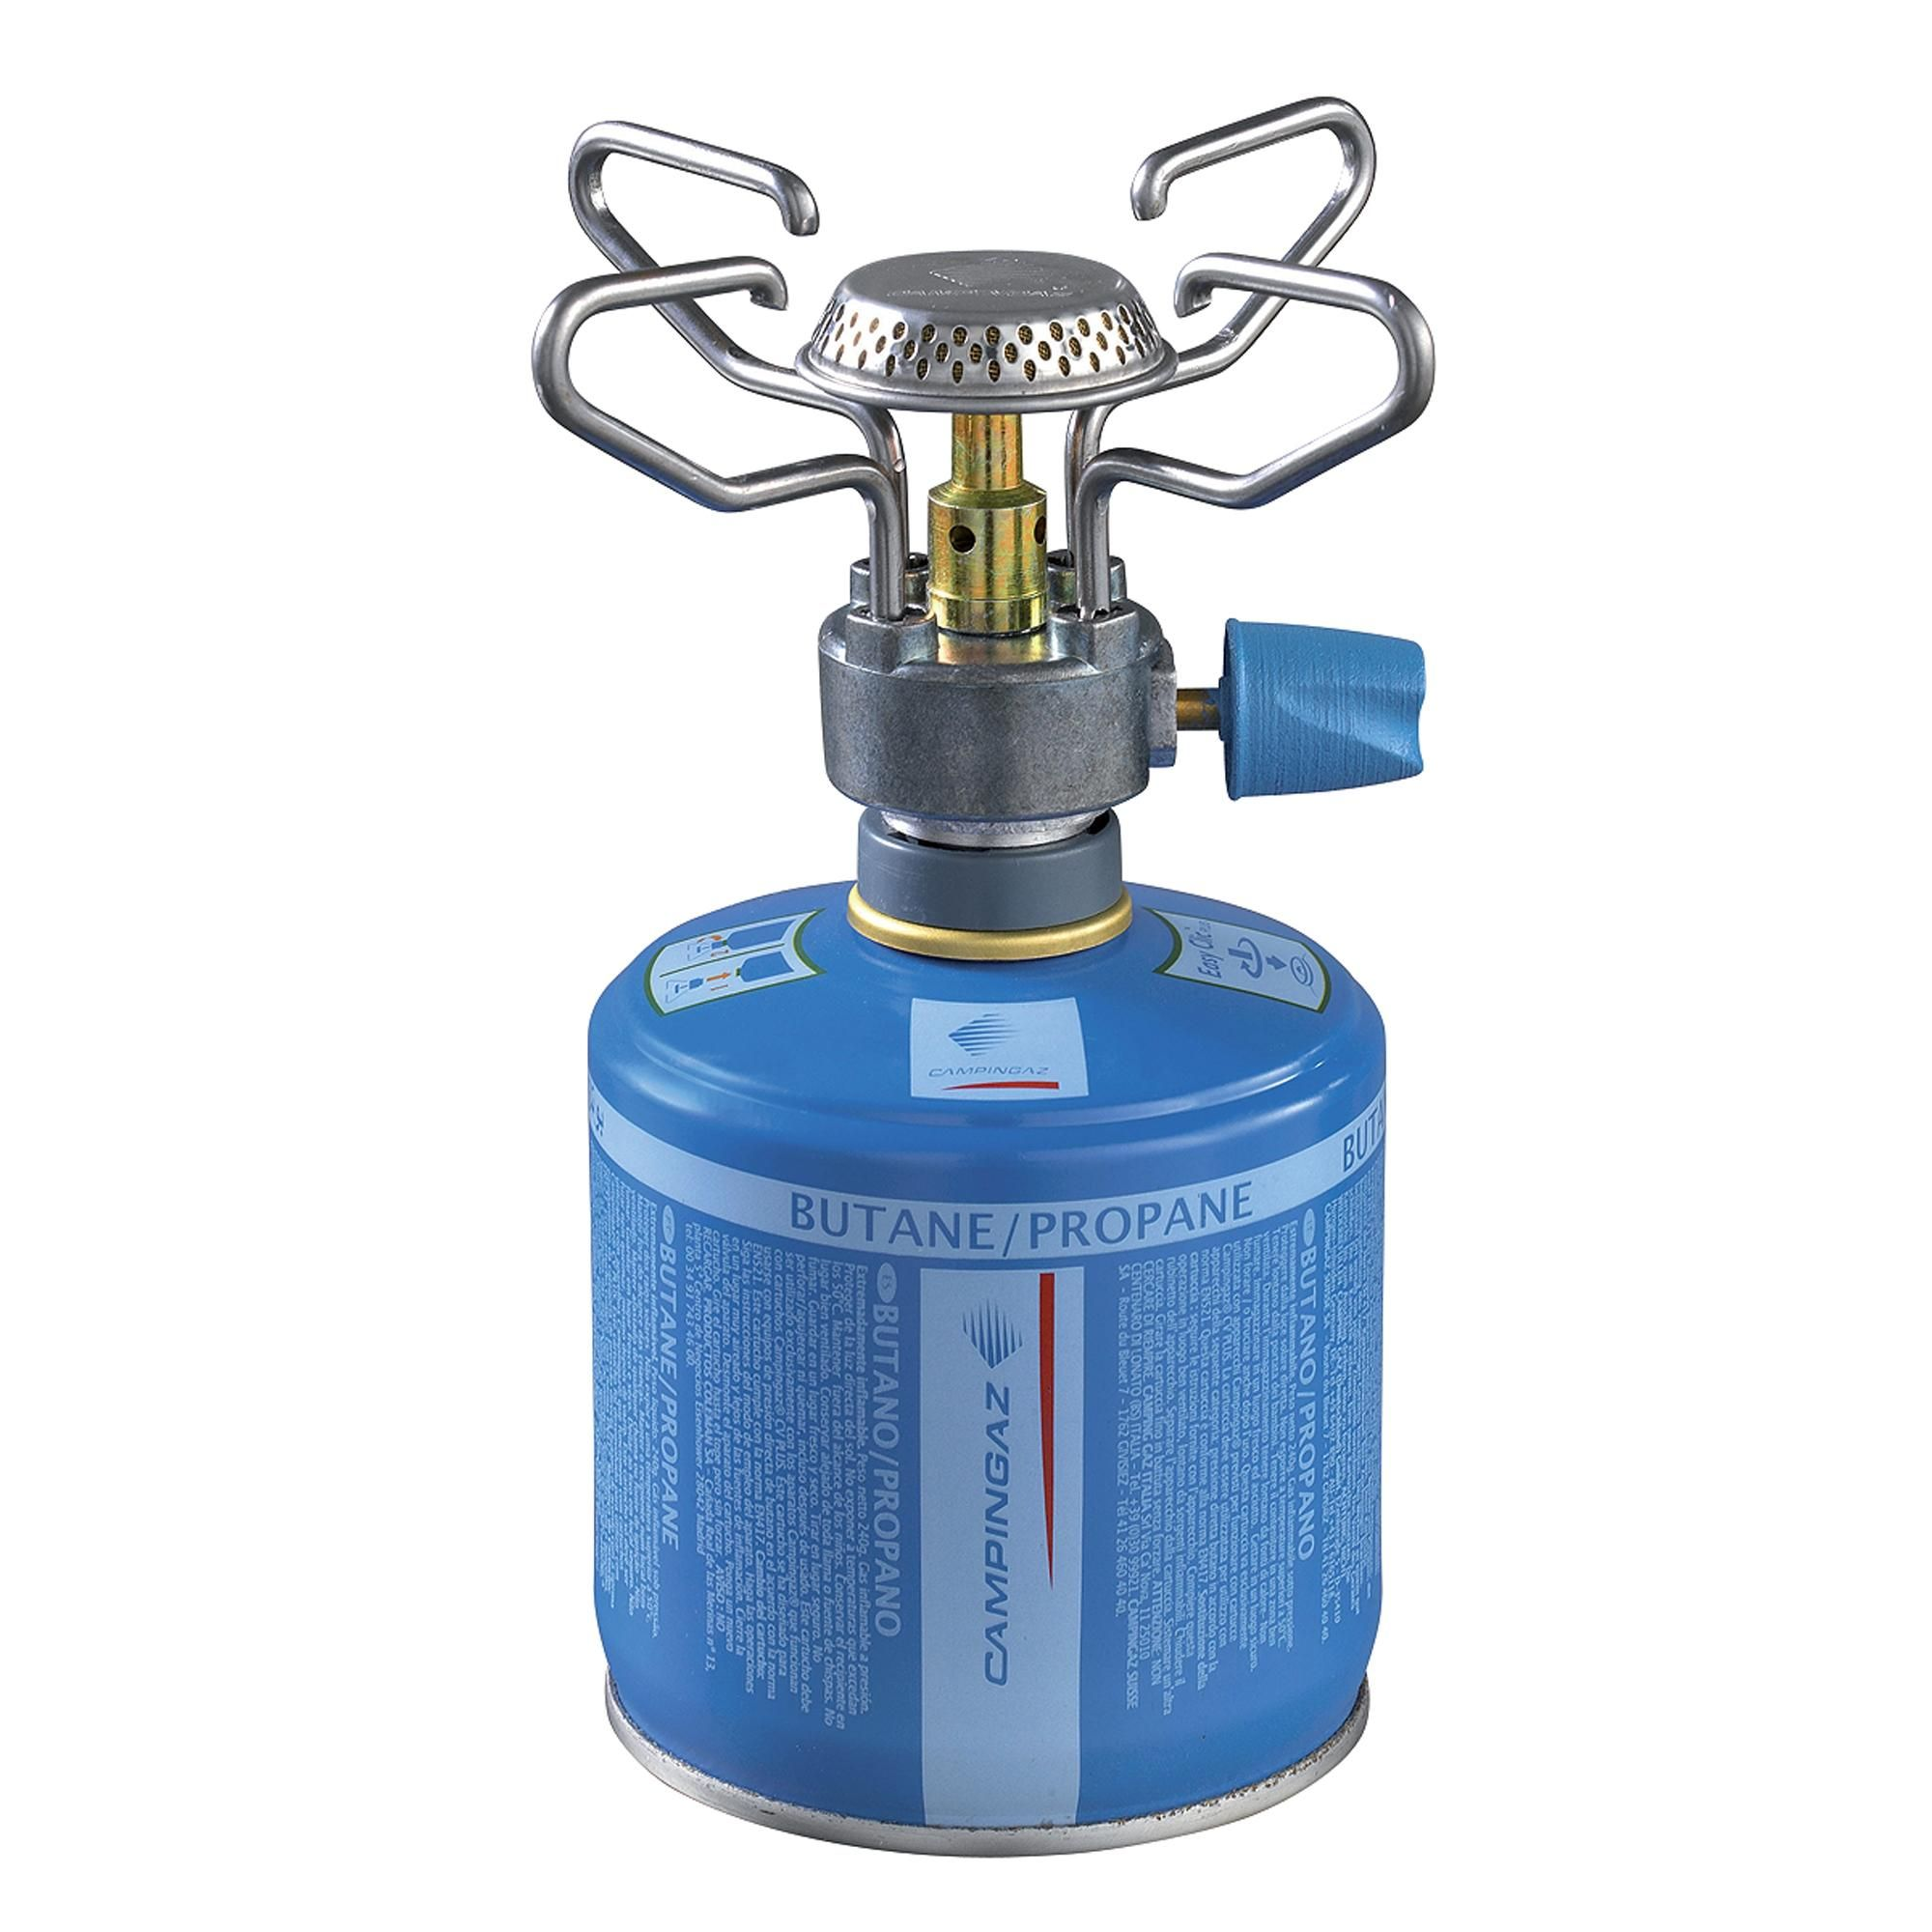 The Campingaz Bleuet micro plus stove has foldable arms for ...